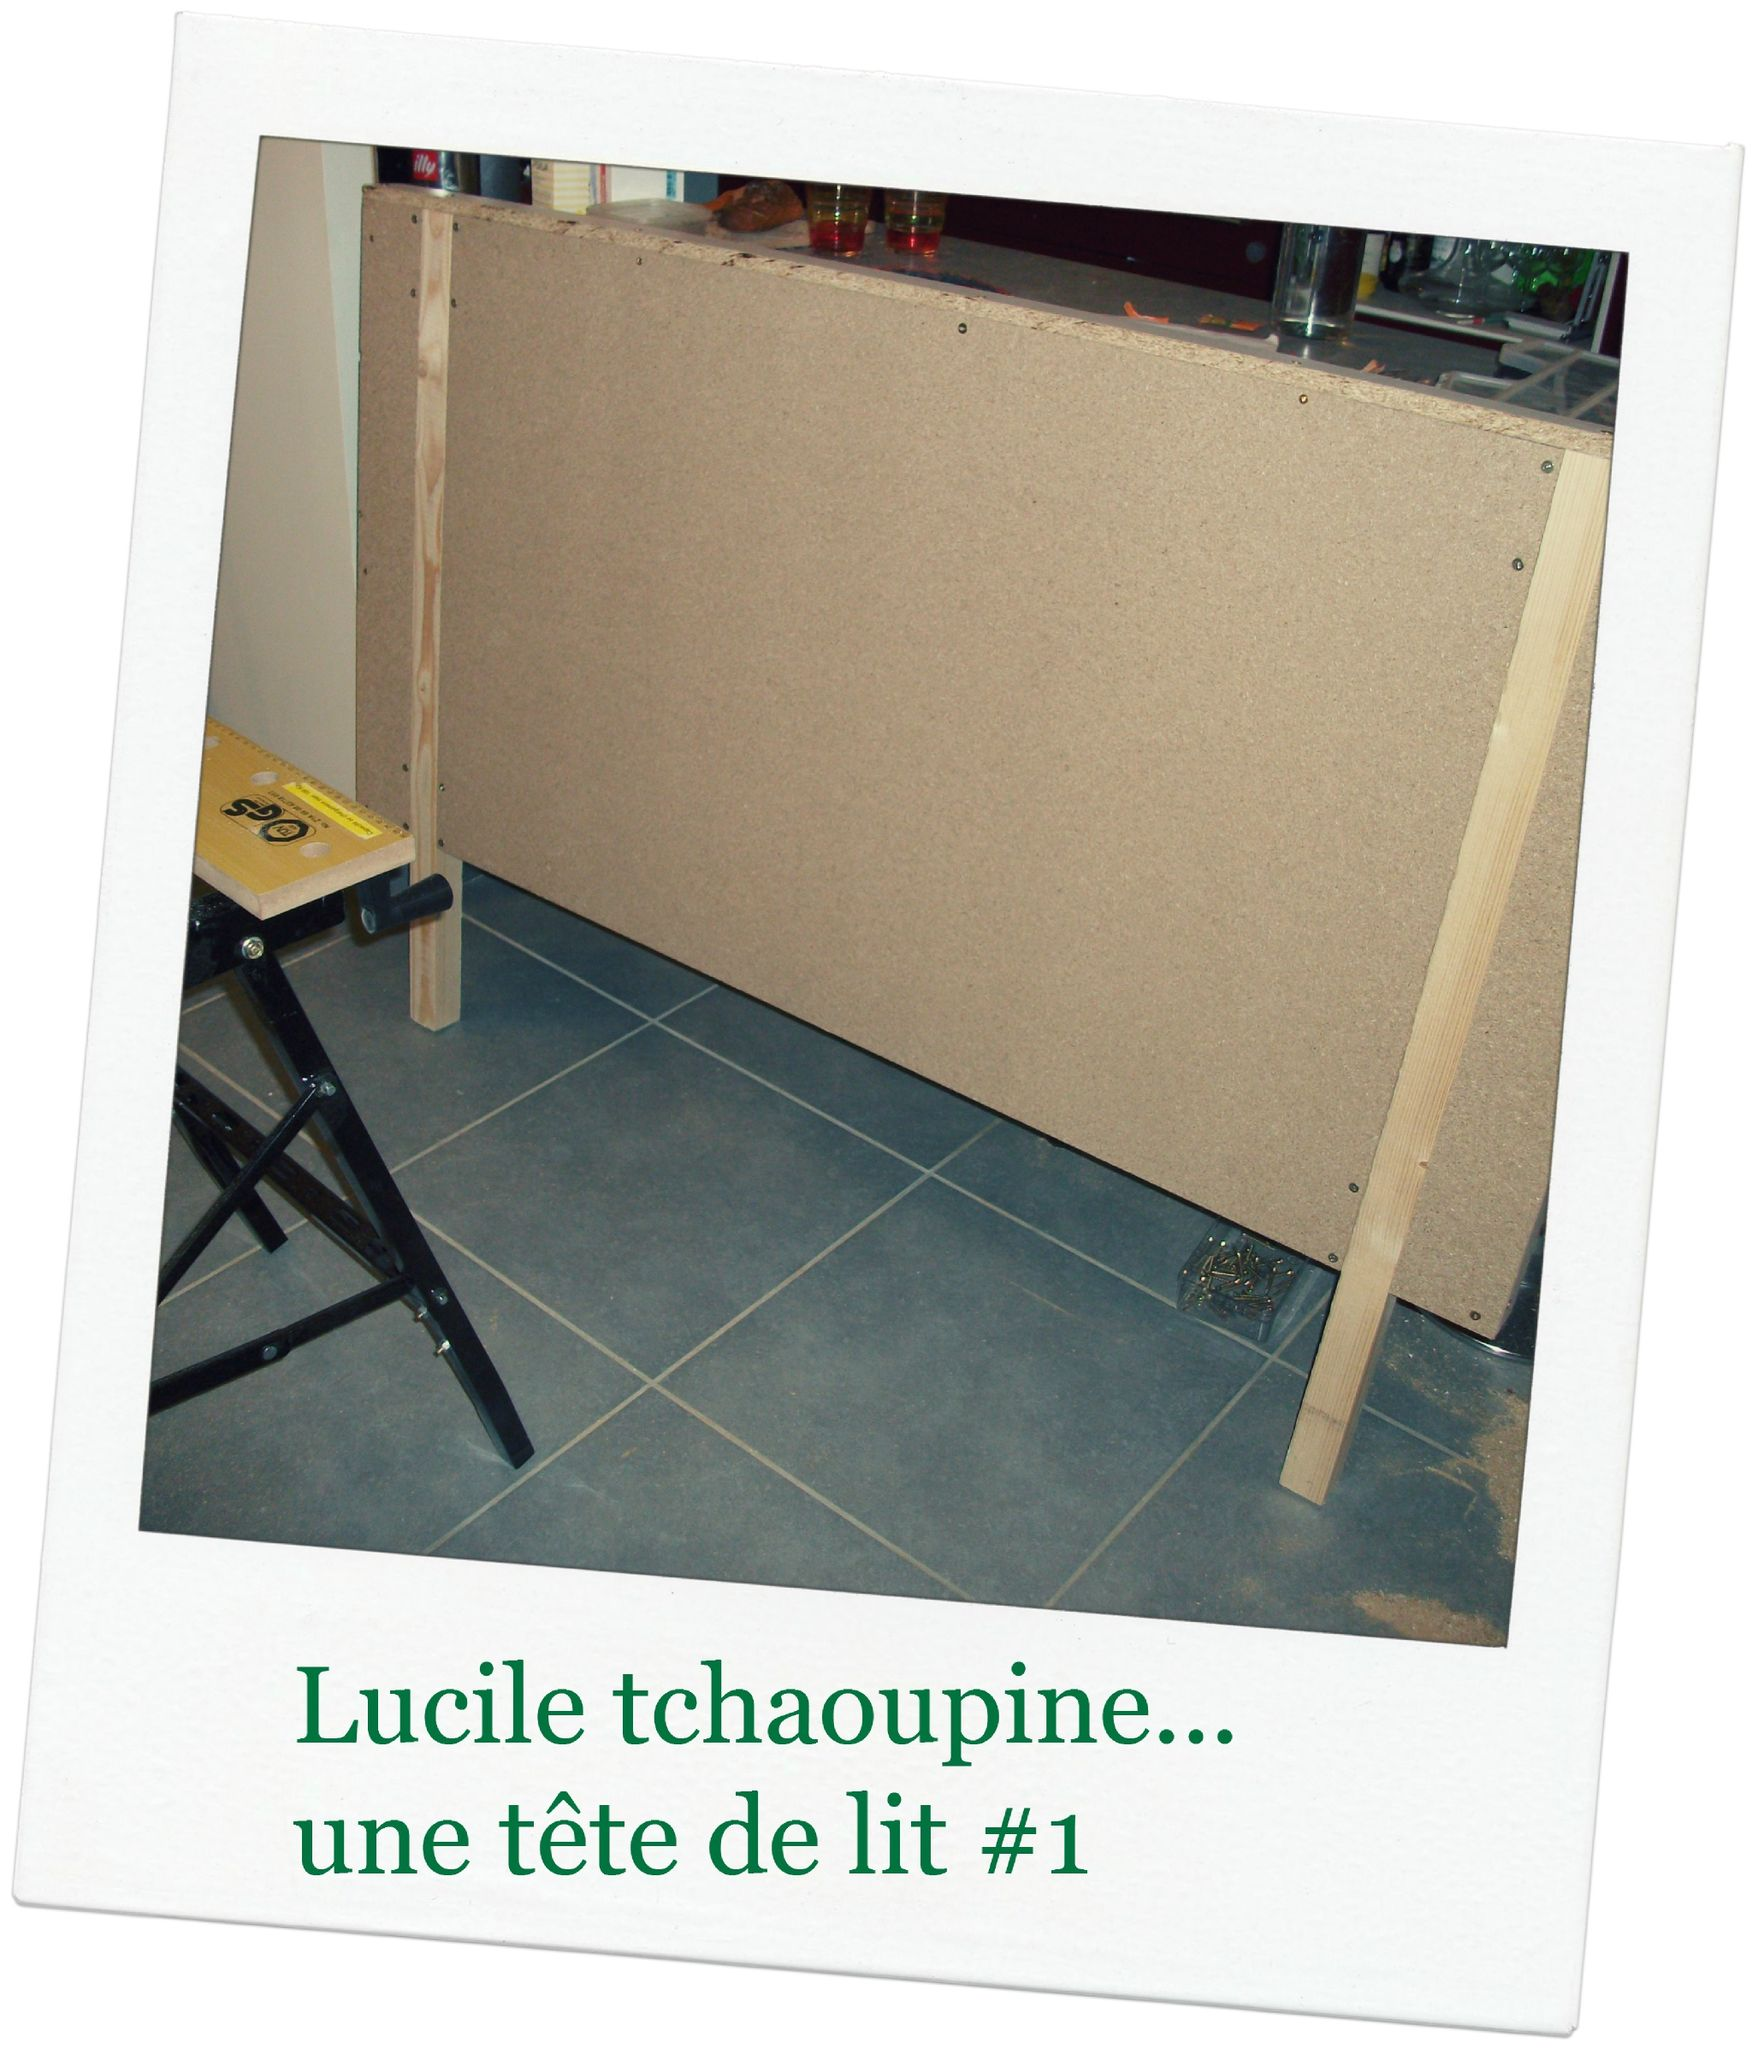 une t te de lit home made 1 lucile tchaoupine. Black Bedroom Furniture Sets. Home Design Ideas